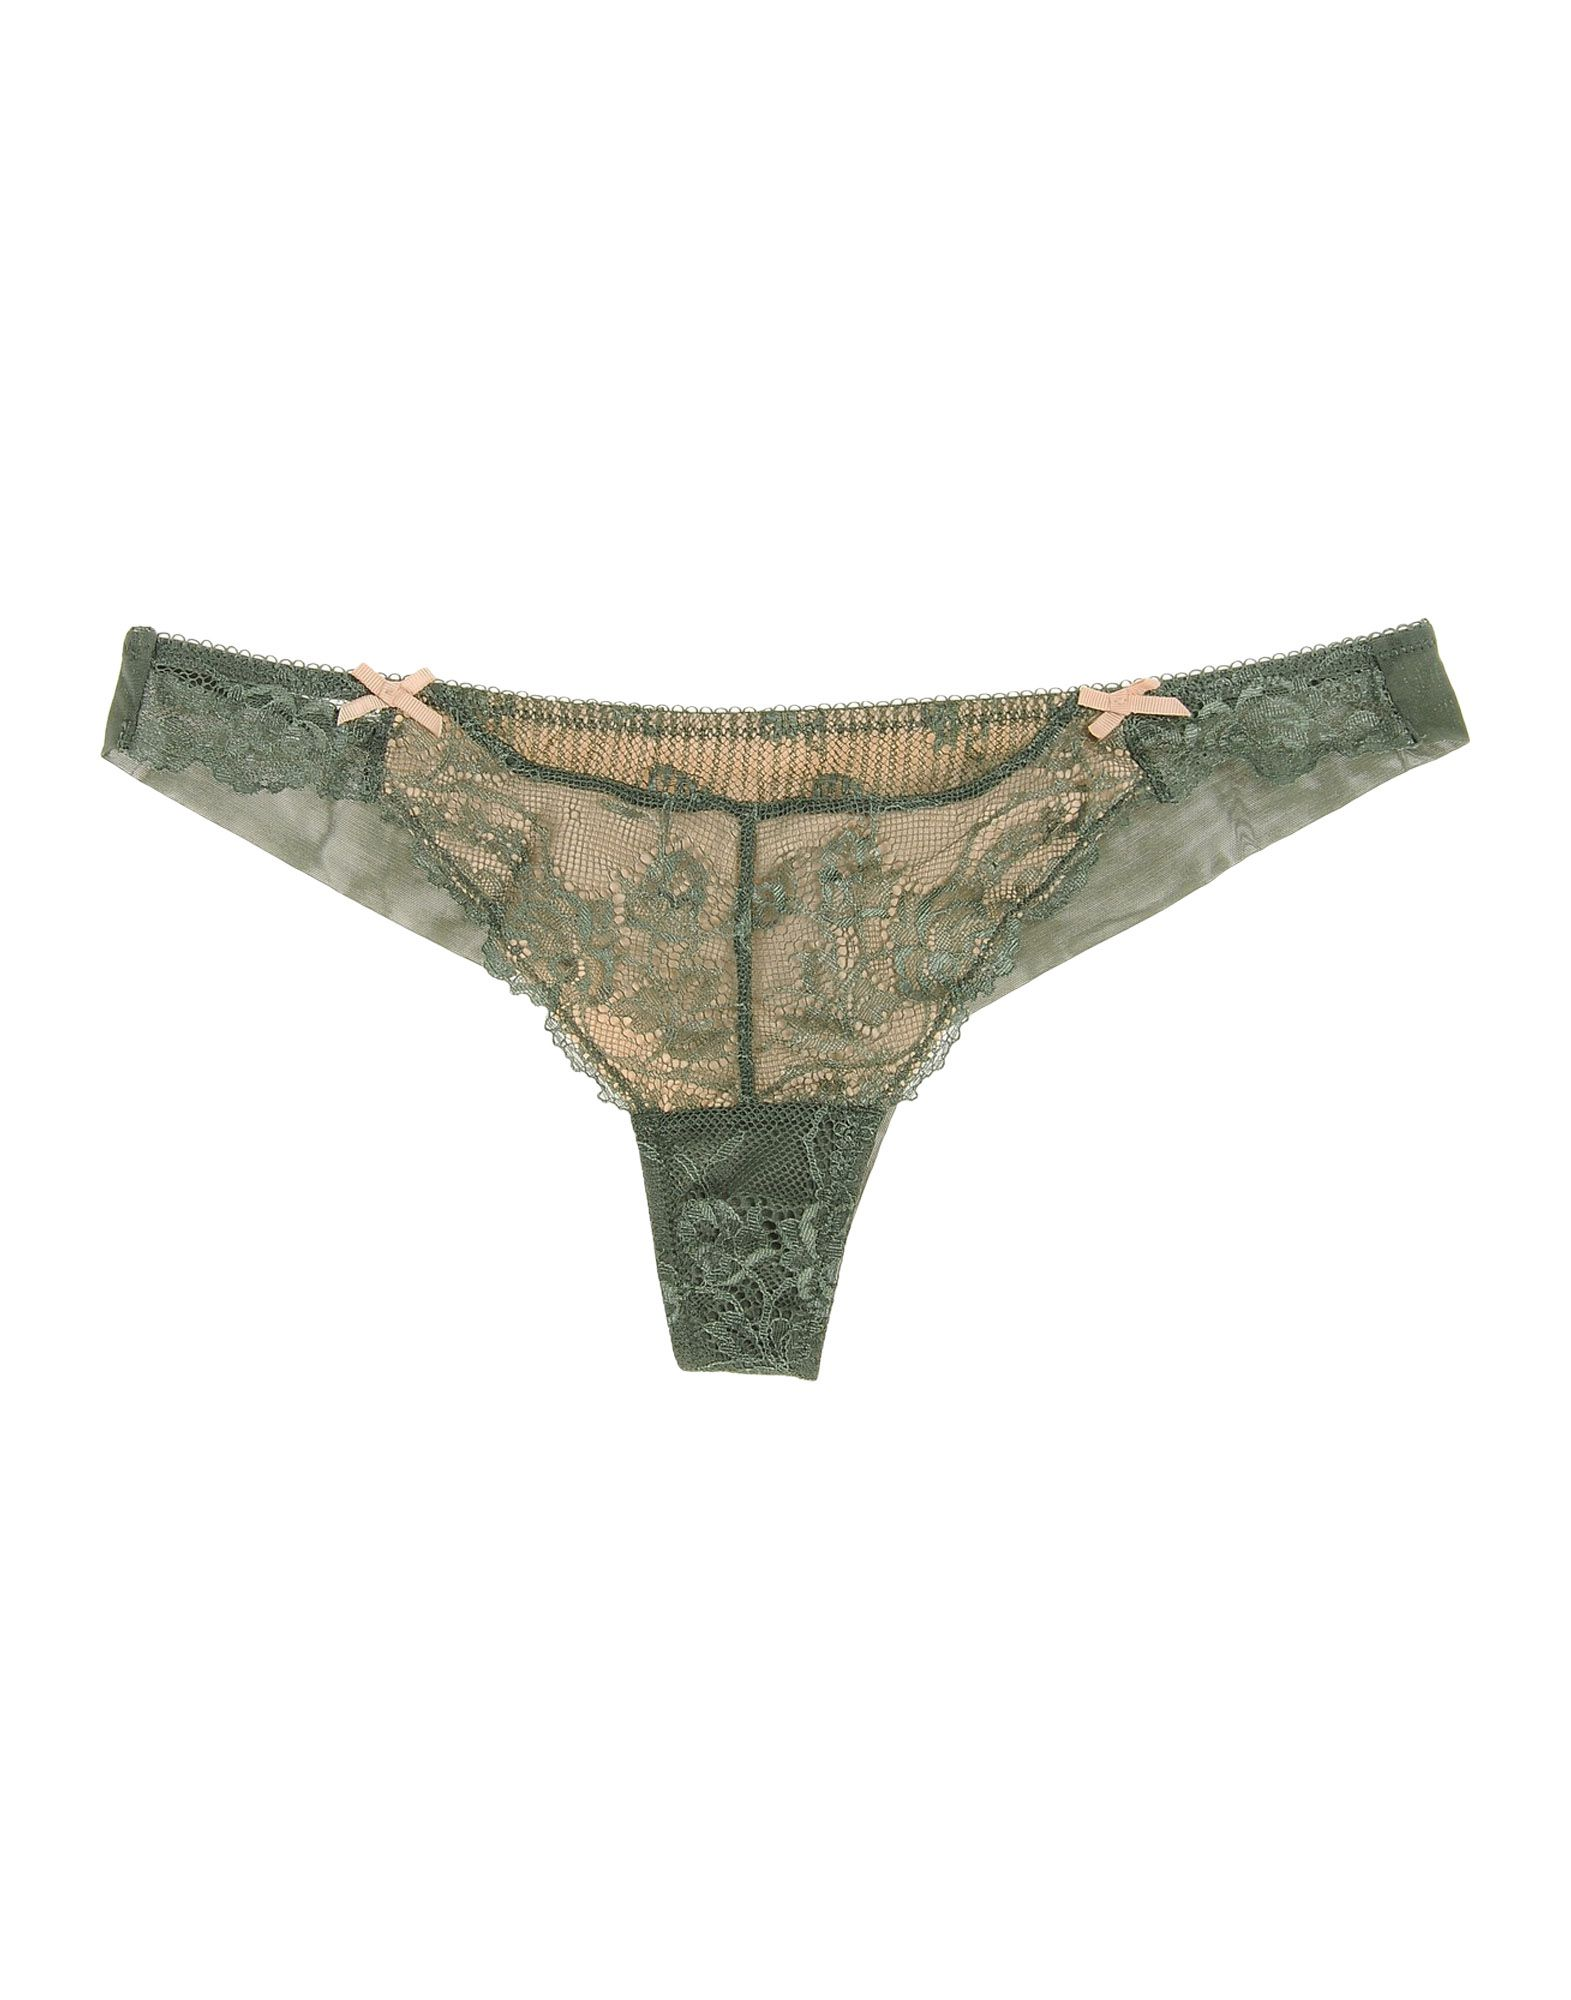 ELLE MACPHERSON INTIMATES Thongs in Military Green